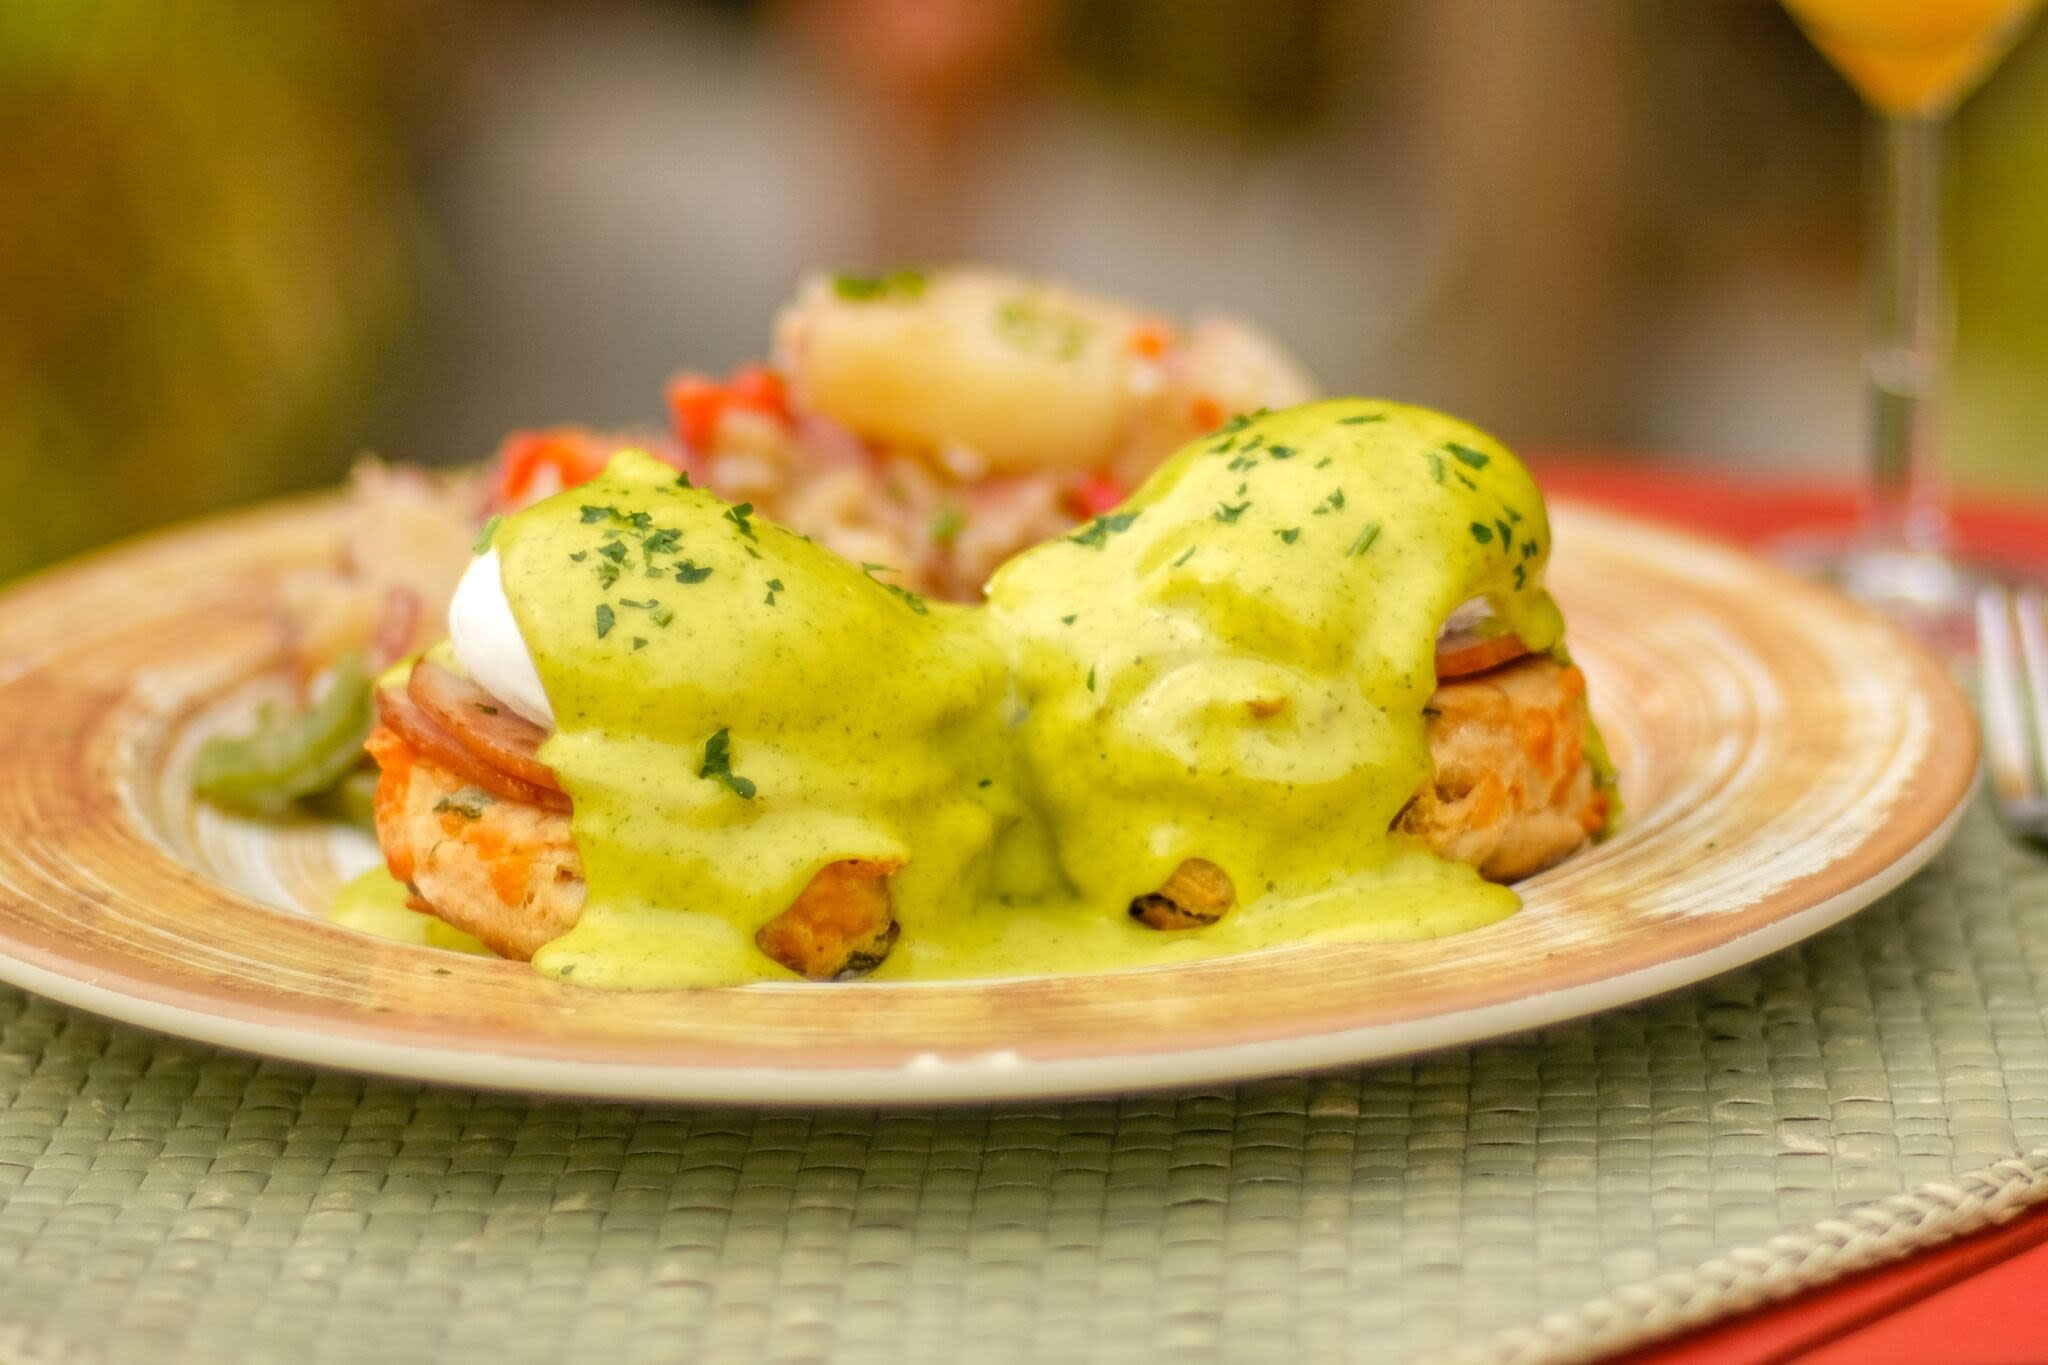 King s benedict 5 preview aovjcd